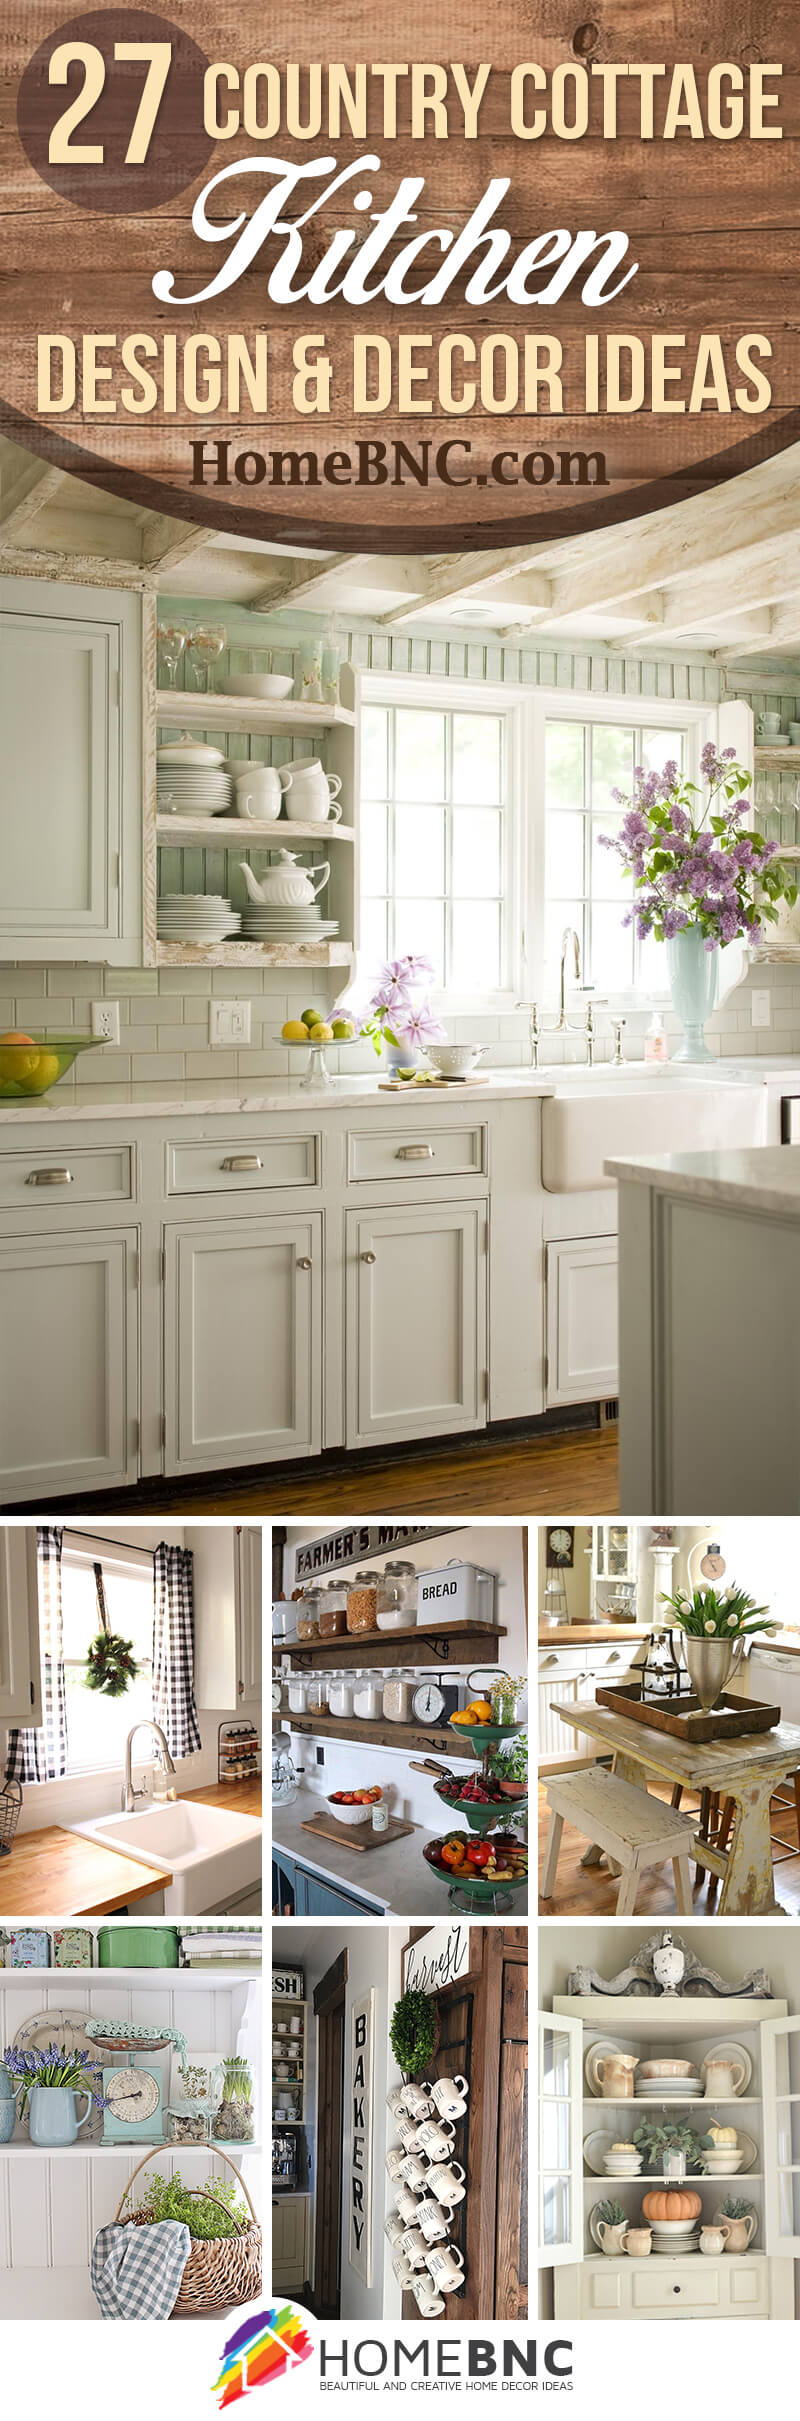 country cottage kitchen designs counter height table 27 best style decor ideas and for 2019 breathtaking to upgrade your